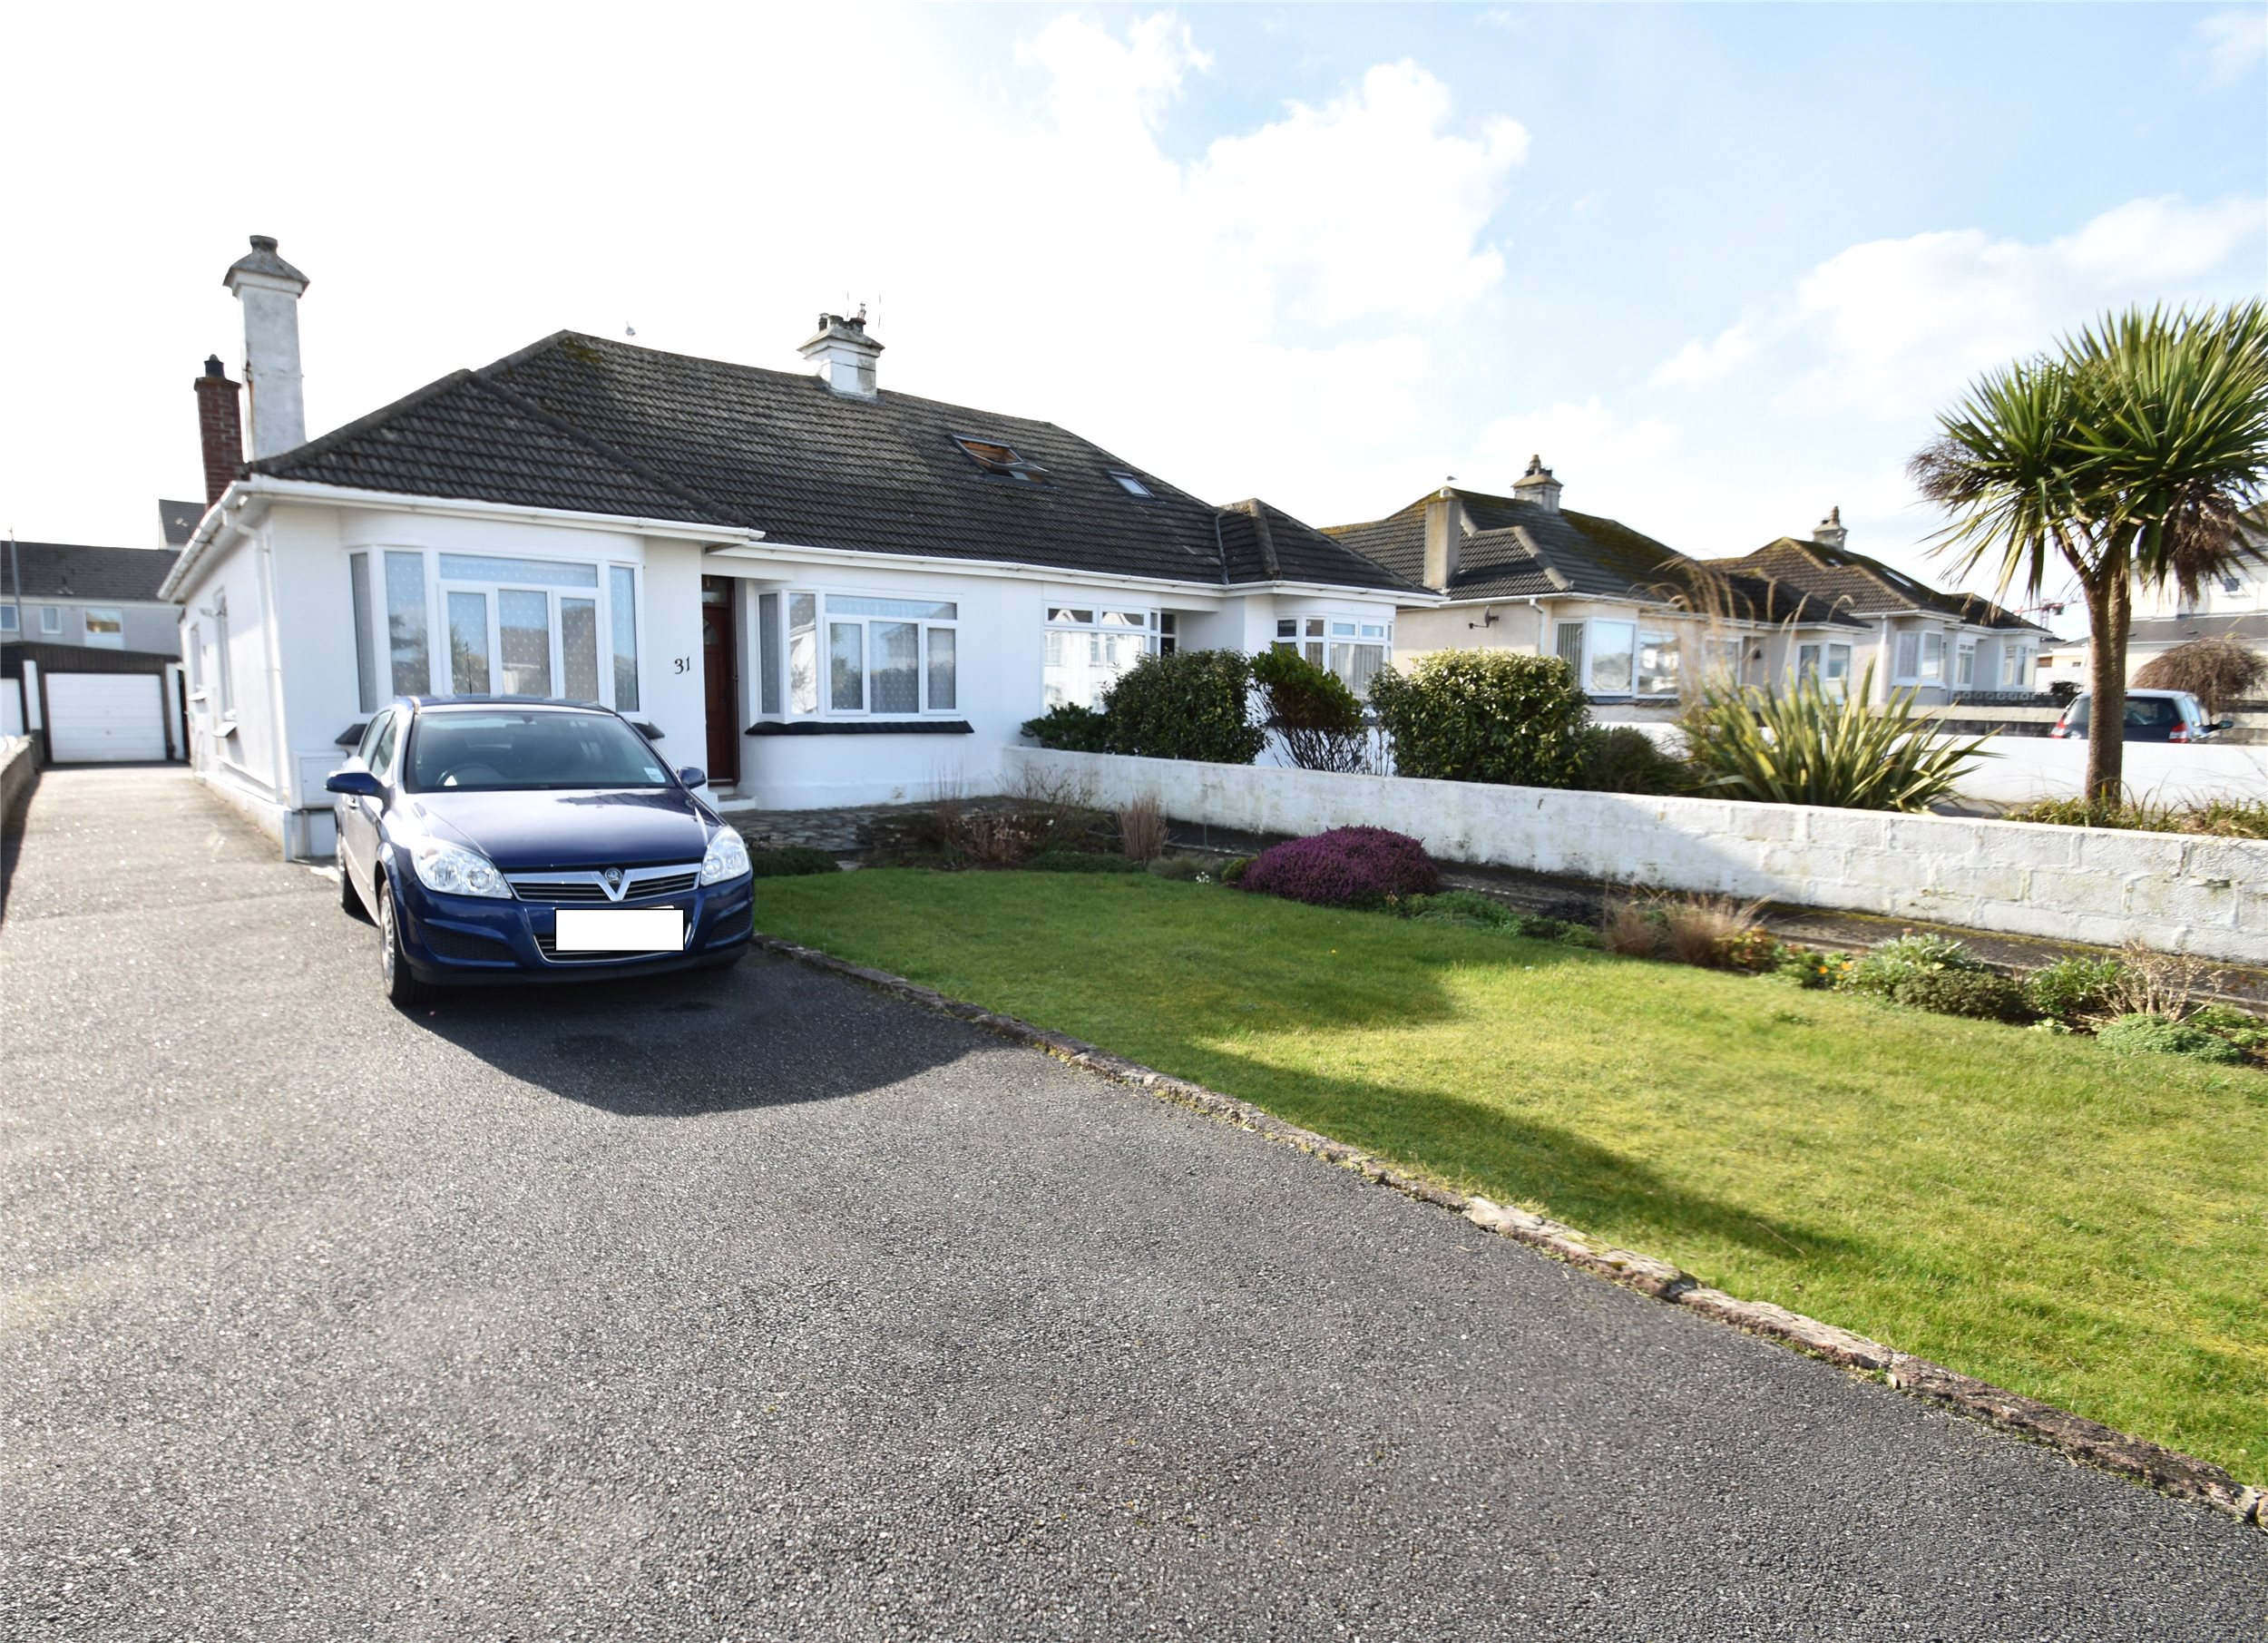 Open House -  Bonython Road, Newquay, Cornwall, TR7 3AW - Saturday 30th June - 10am till Noon